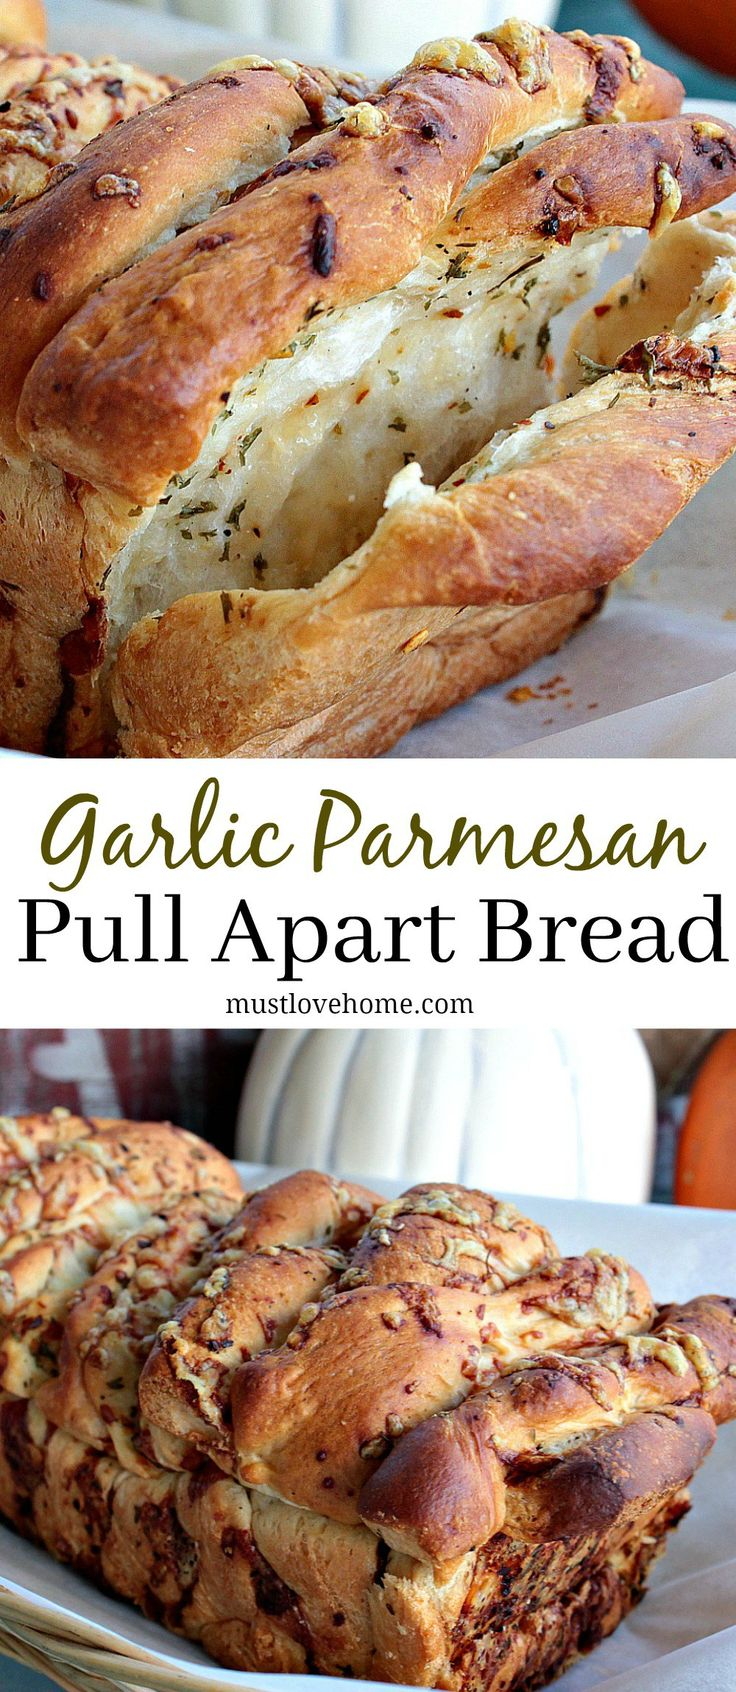 Garlic Parmesan Pull Apart Bread is a soft, buttery loaf loaded with flavor. It looks fancy but it could not be easier to make. No yeast or kneading to worry about because this recipe uses frozen bread dough!